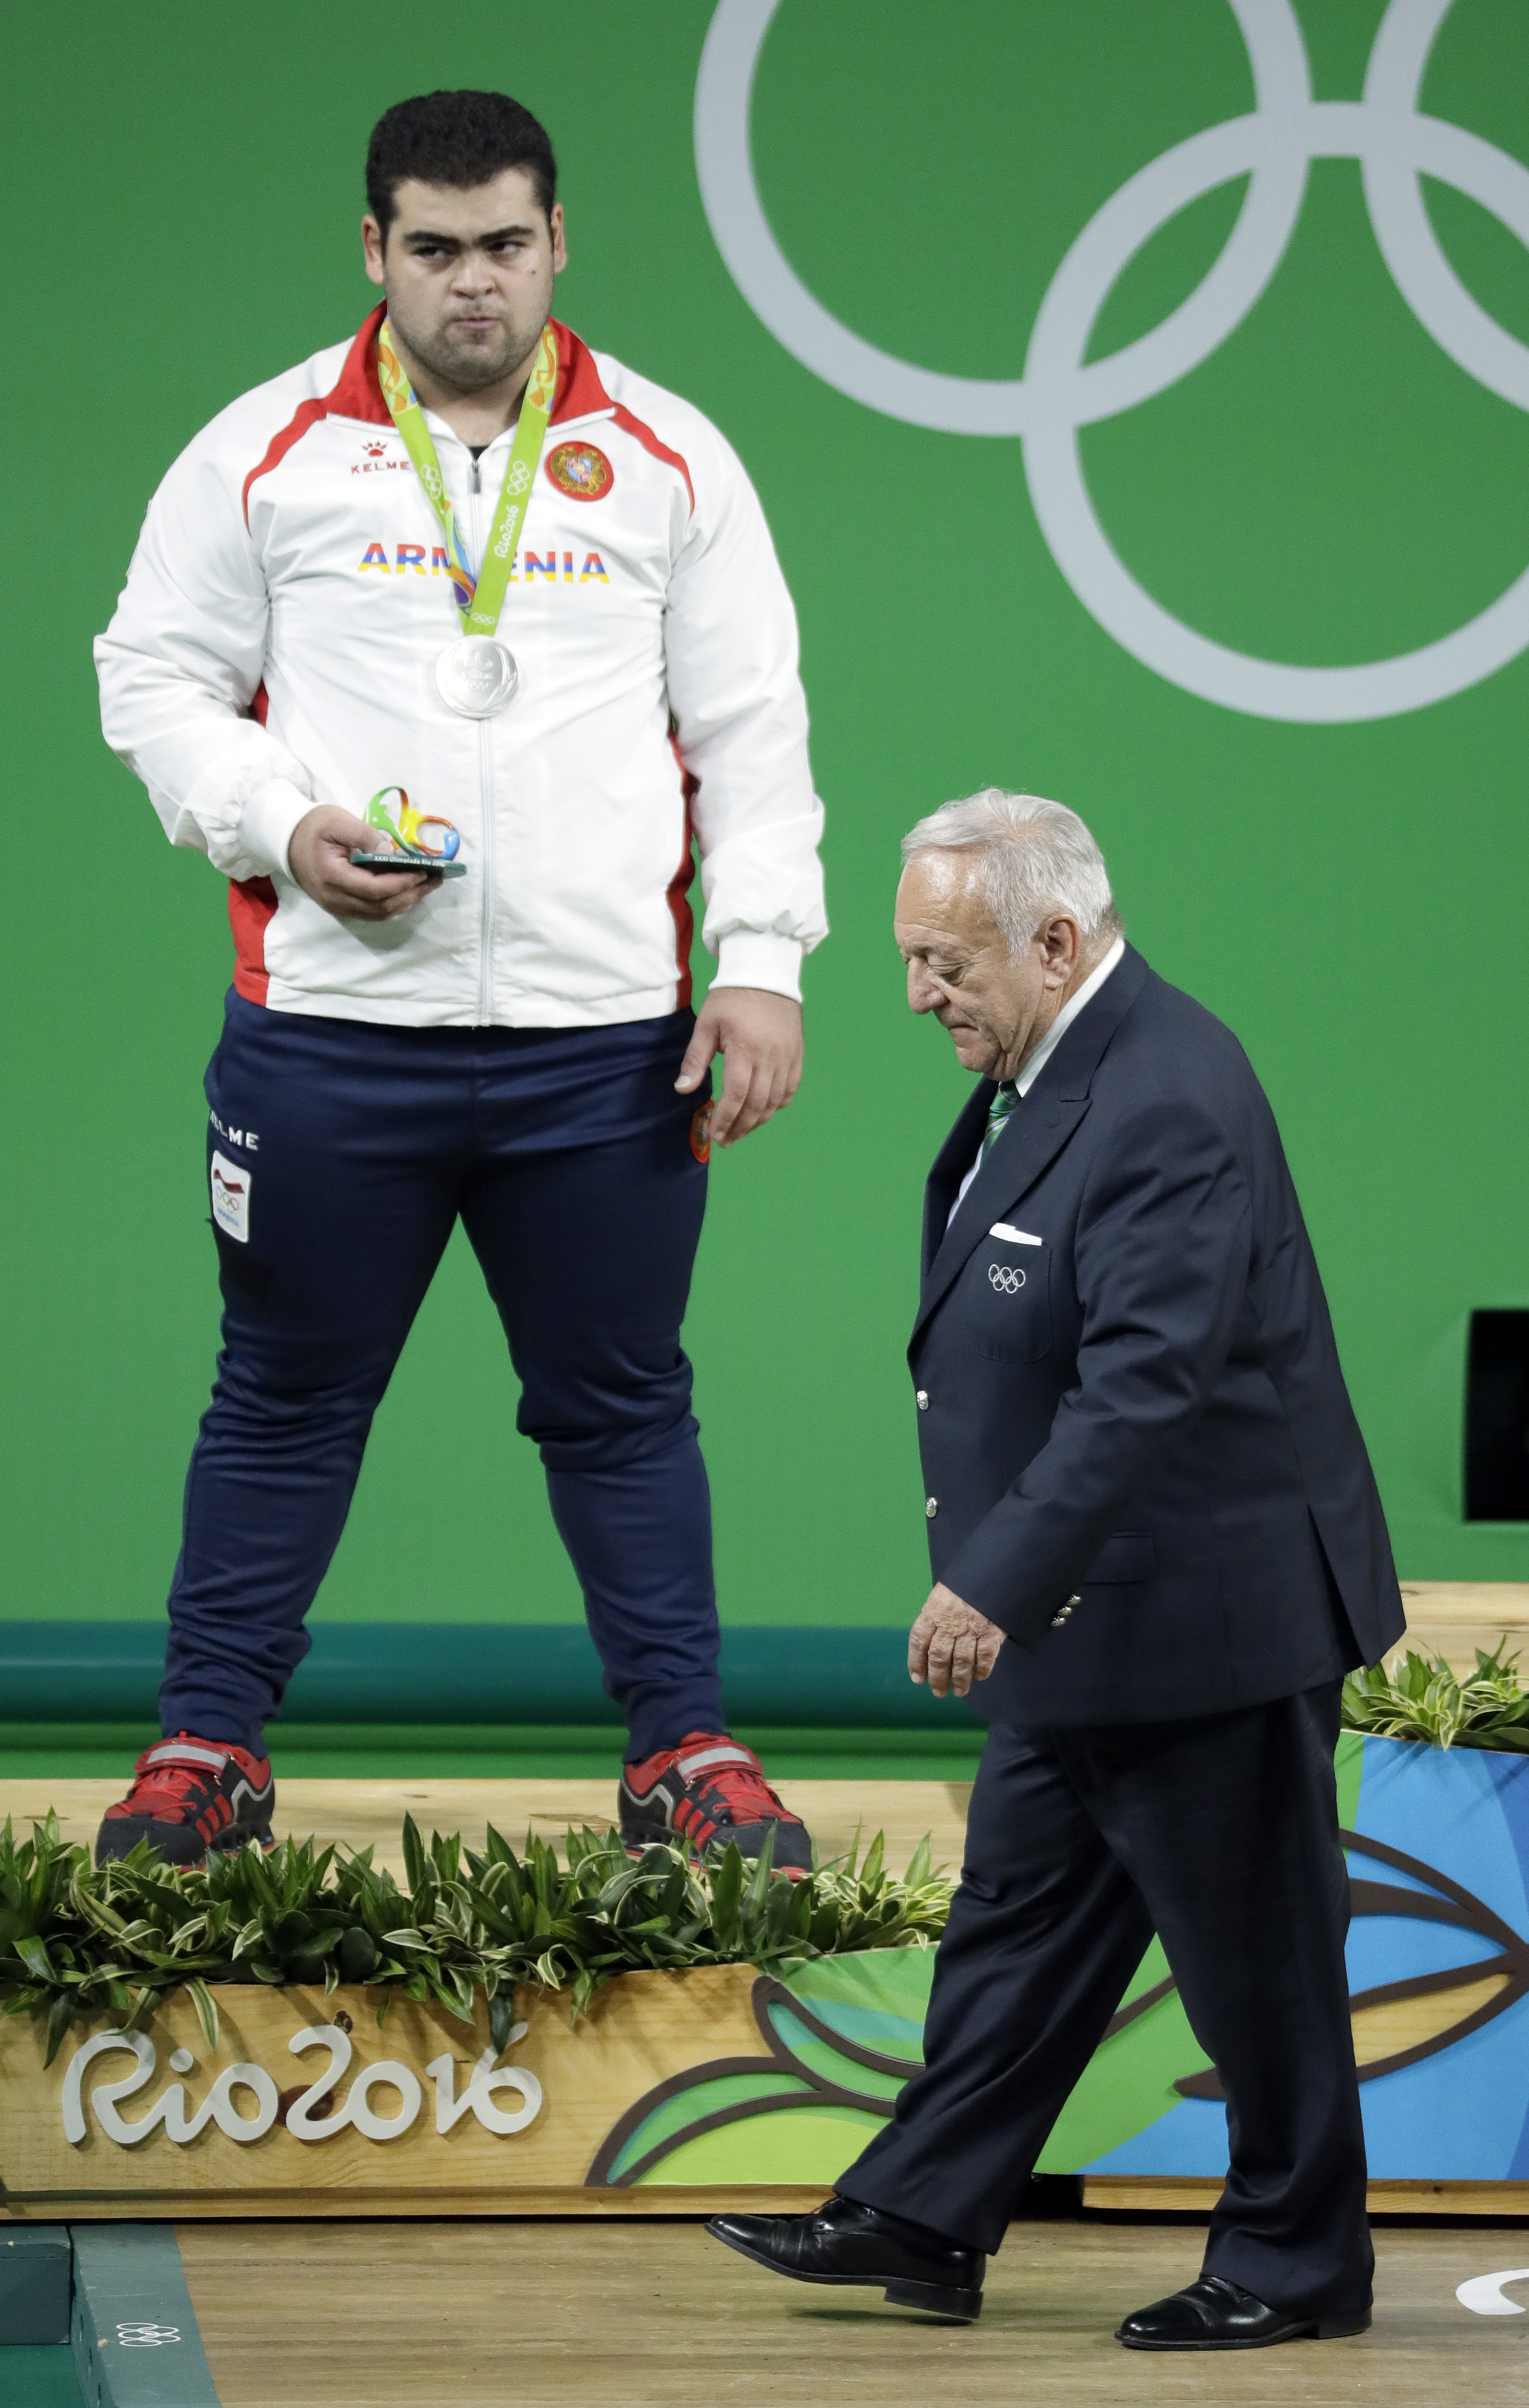 In this Aug. 16, 2016 photo, Tamas Ajan, right, the president of the International Weightlifting Federation, walks past silver medalist Gor Minasyan, of Armenia, left, during the awards ceremony for the men's +105 kg weightlifting event at the 2016 Summer